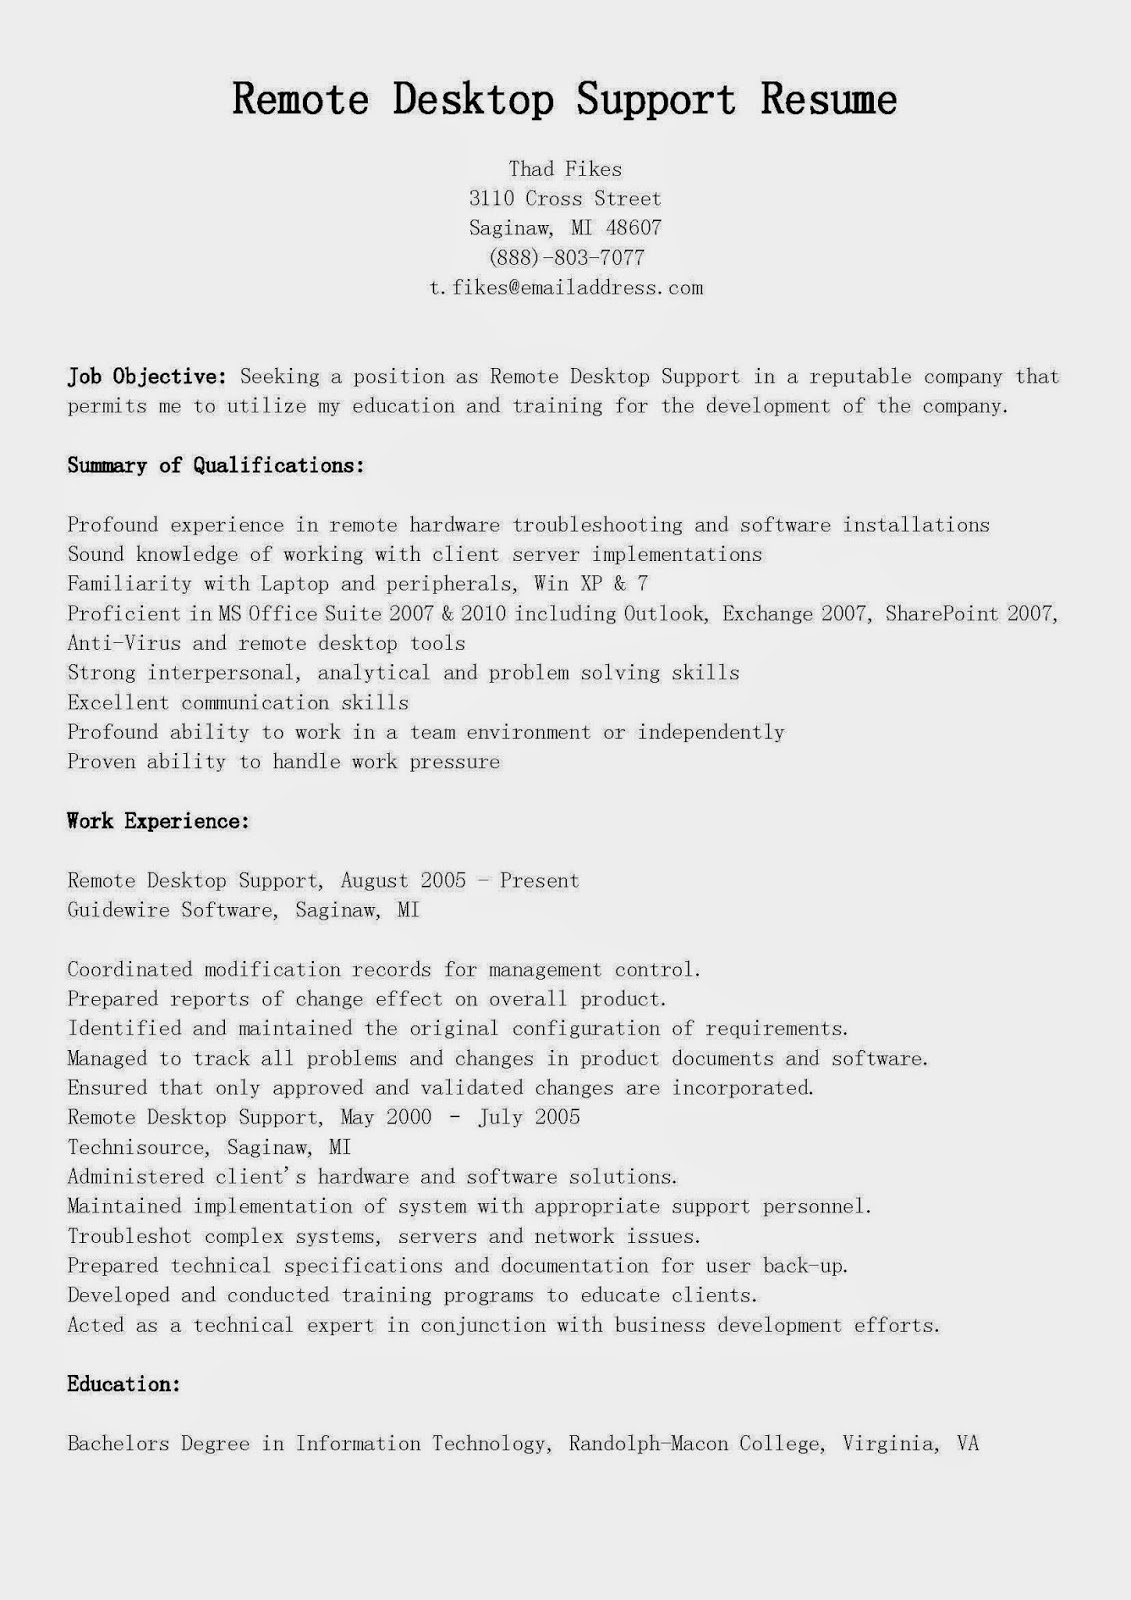 resume samples  remote desktop support resume sample